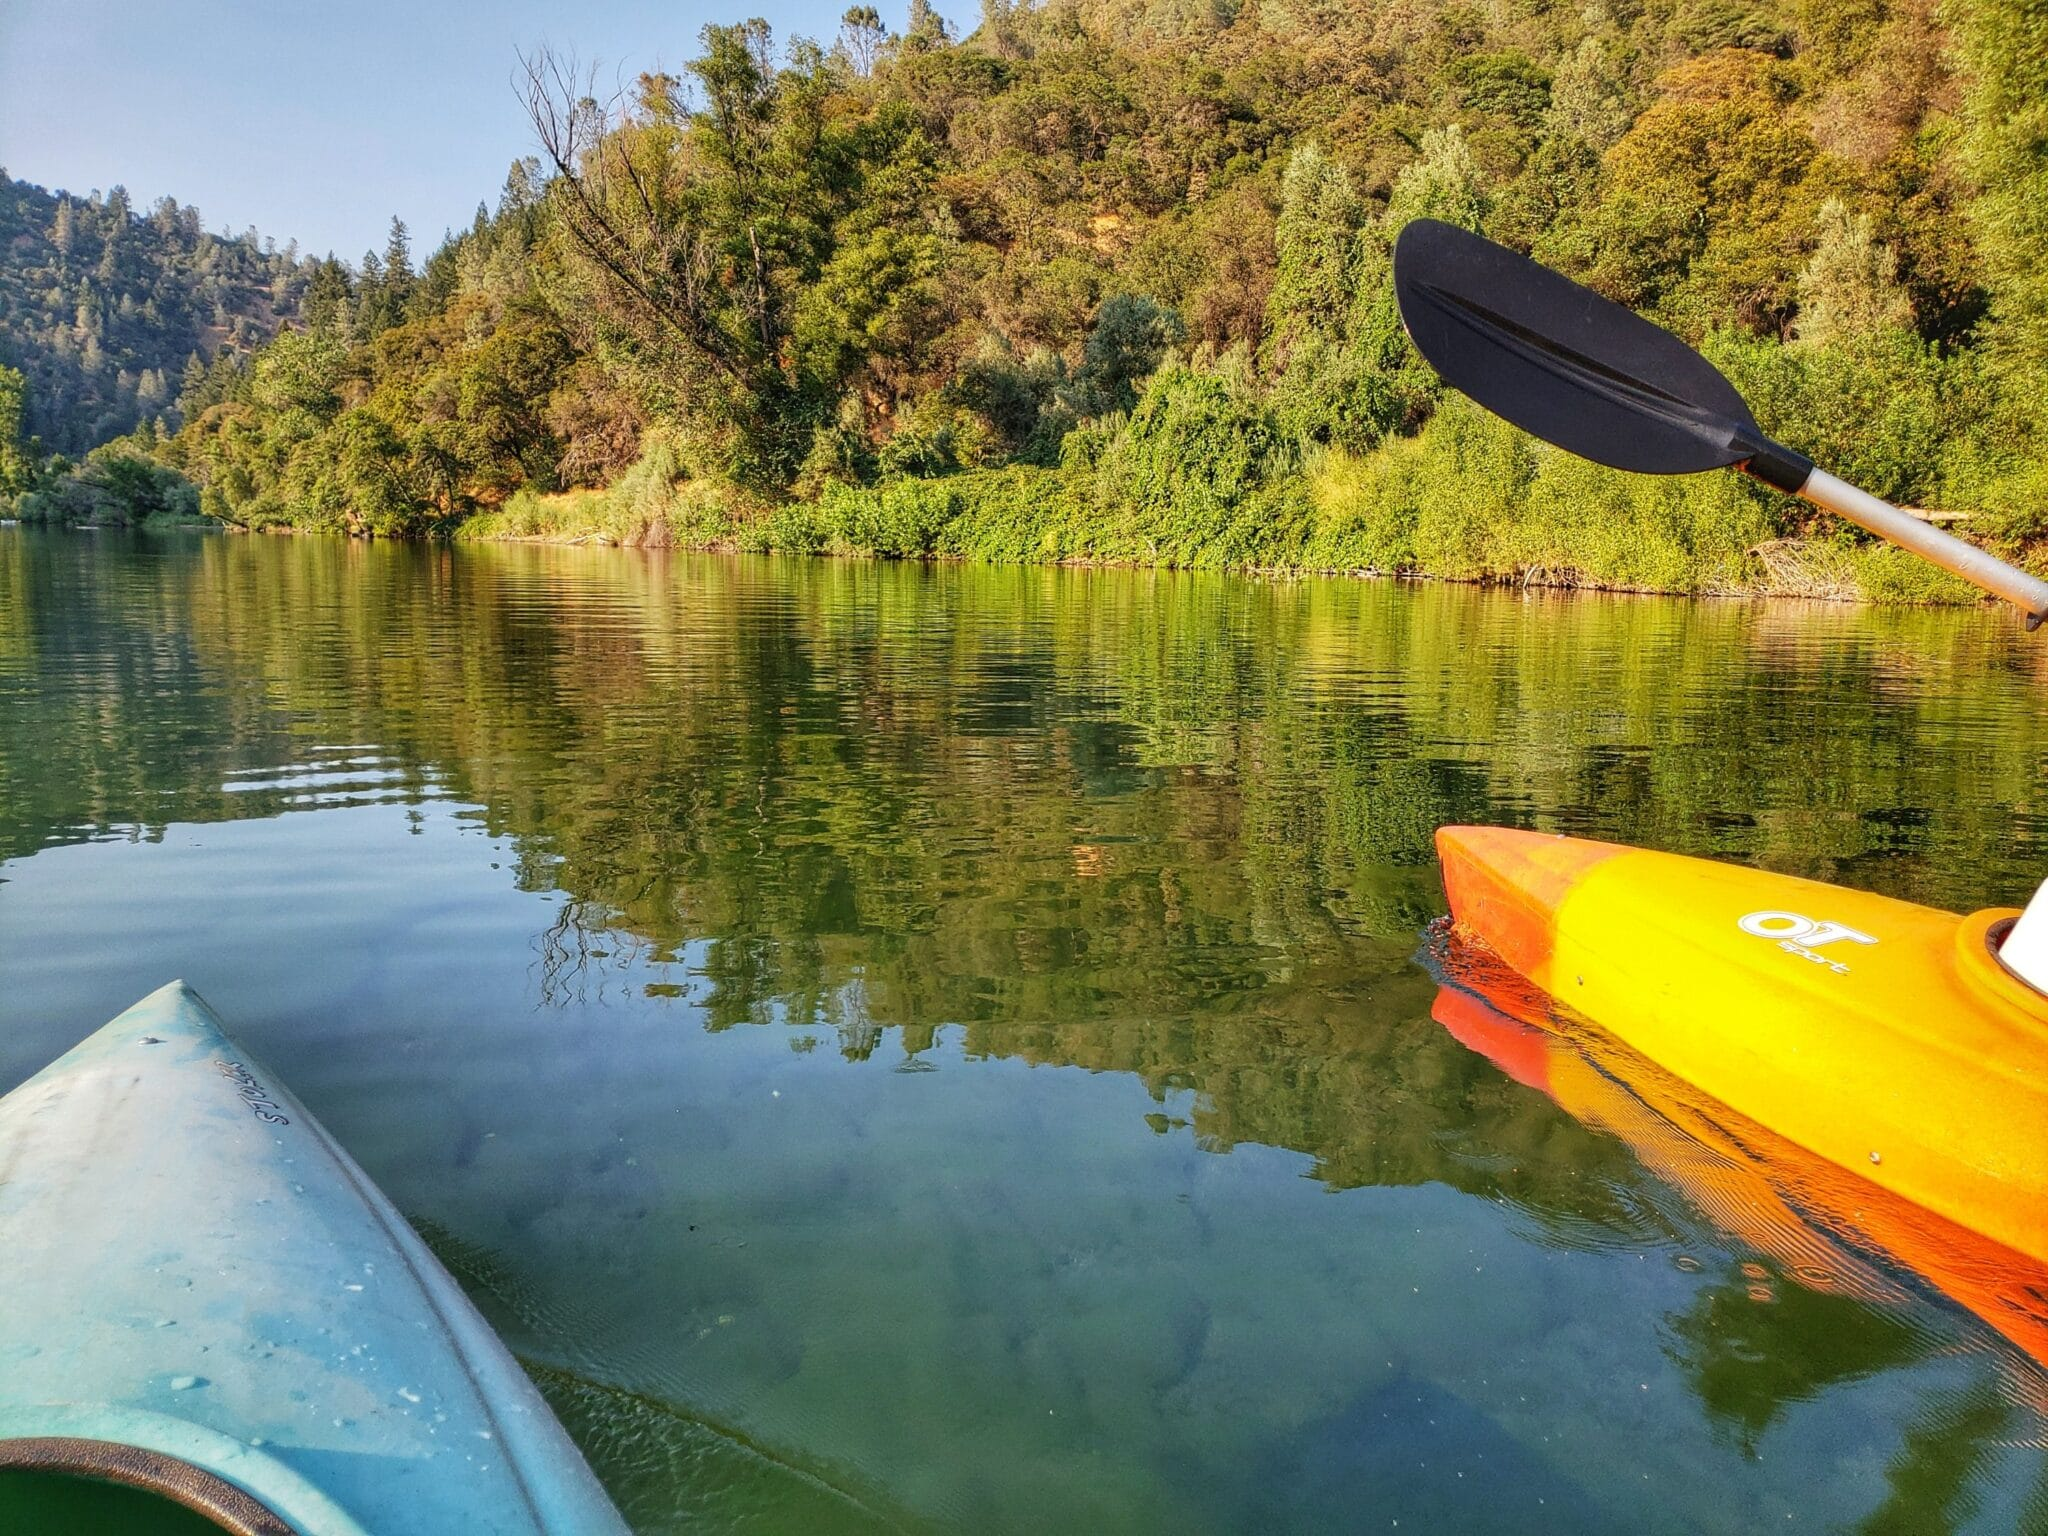 Lake Clementine - A Guide to Explore, Adventure, and Relax